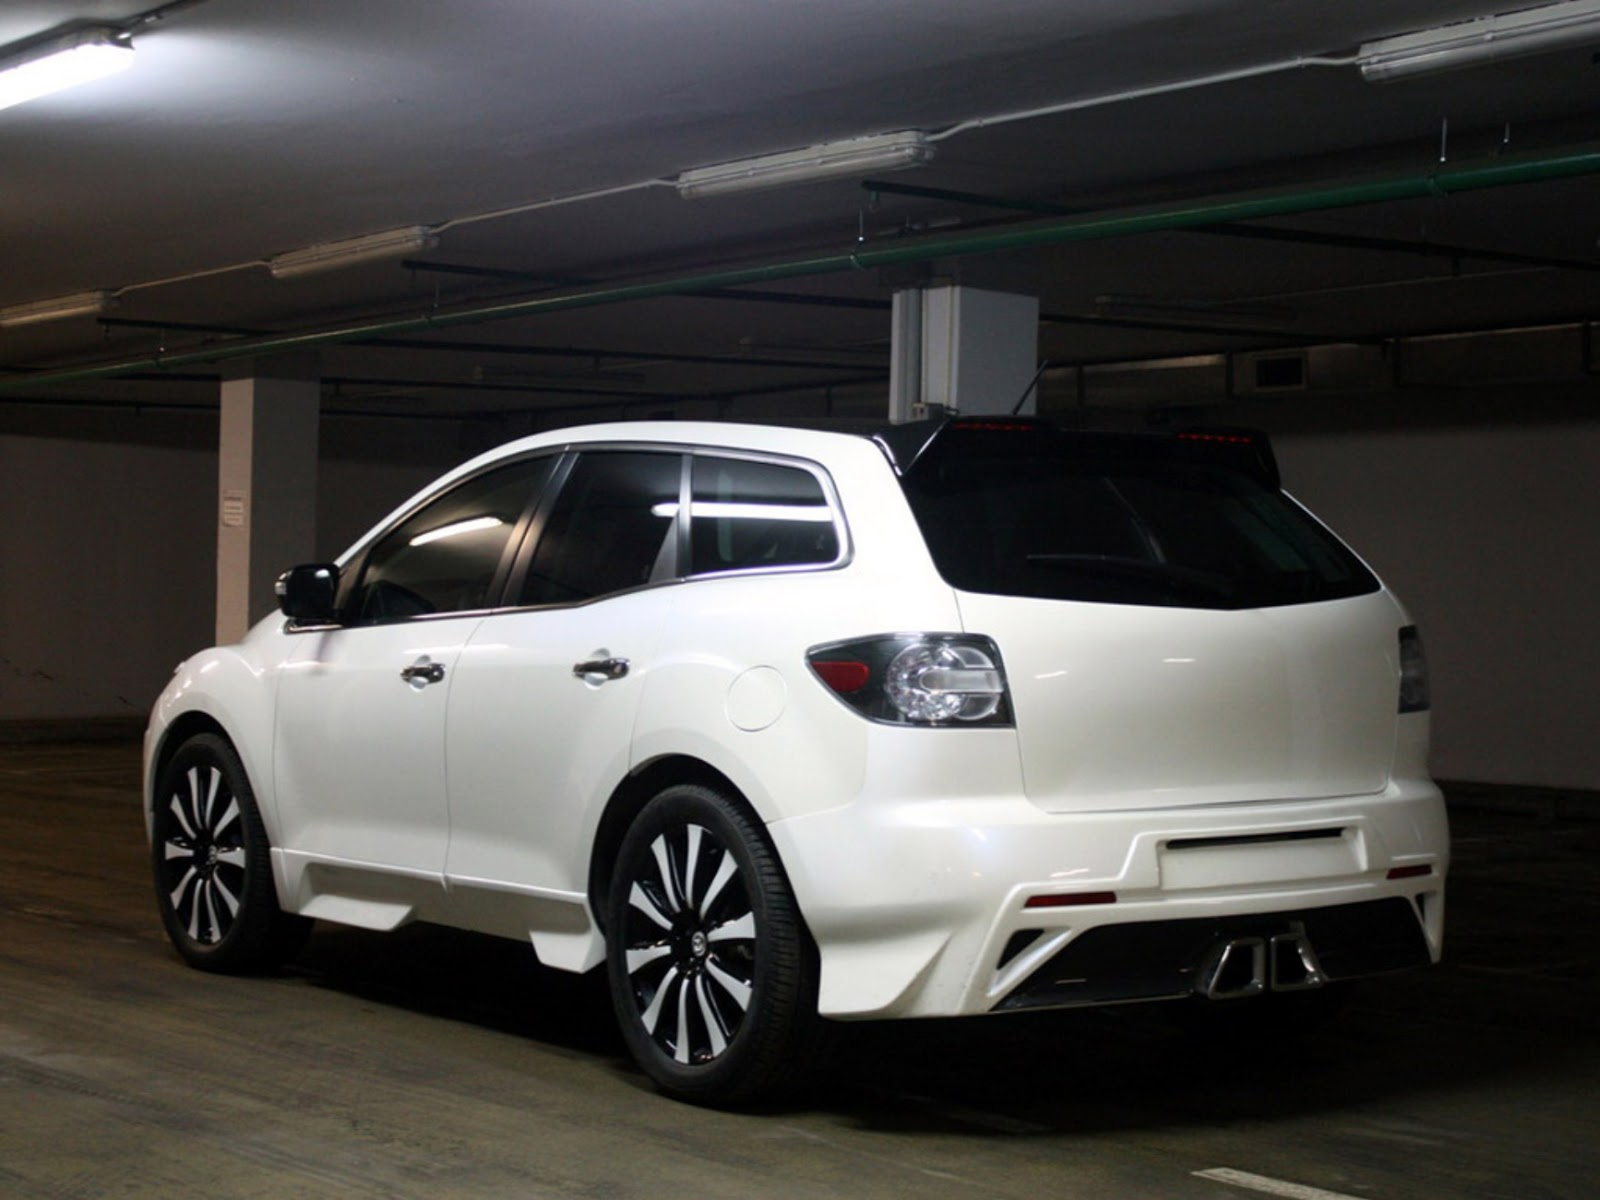 all tuning cars nz mazda cx 7 2010 by met r. Black Bedroom Furniture Sets. Home Design Ideas